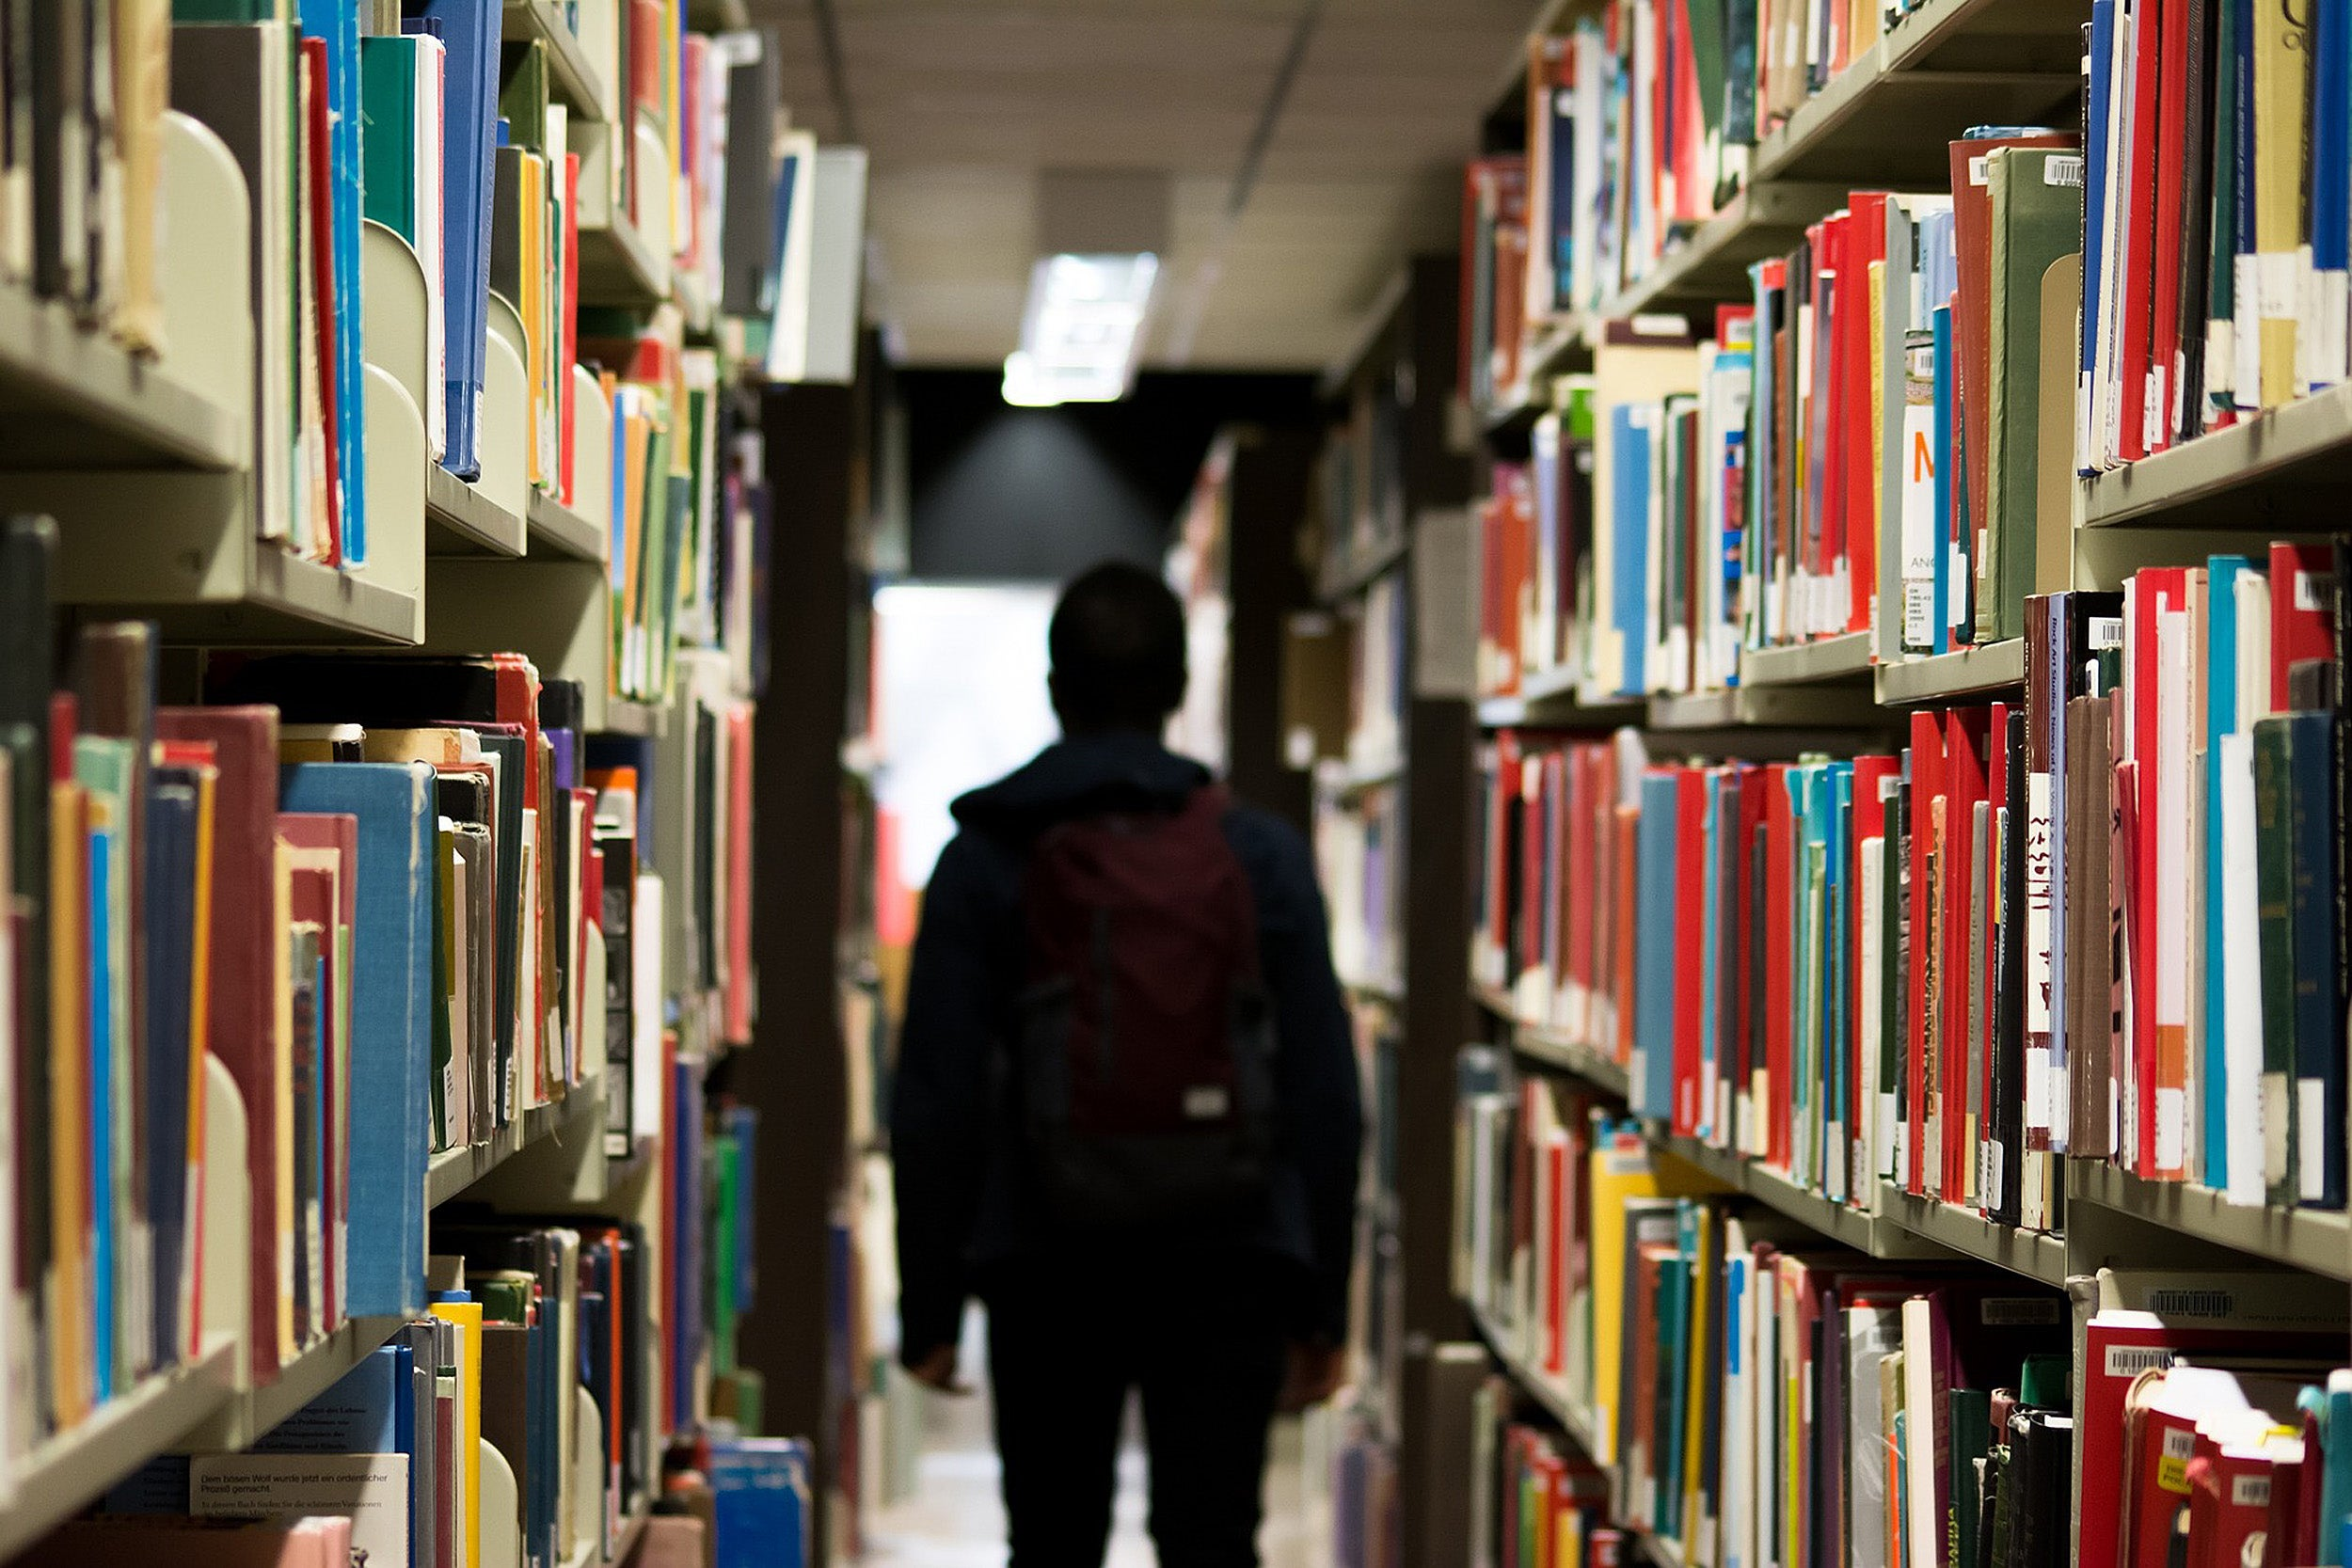 A person in silhouette between library book shelves